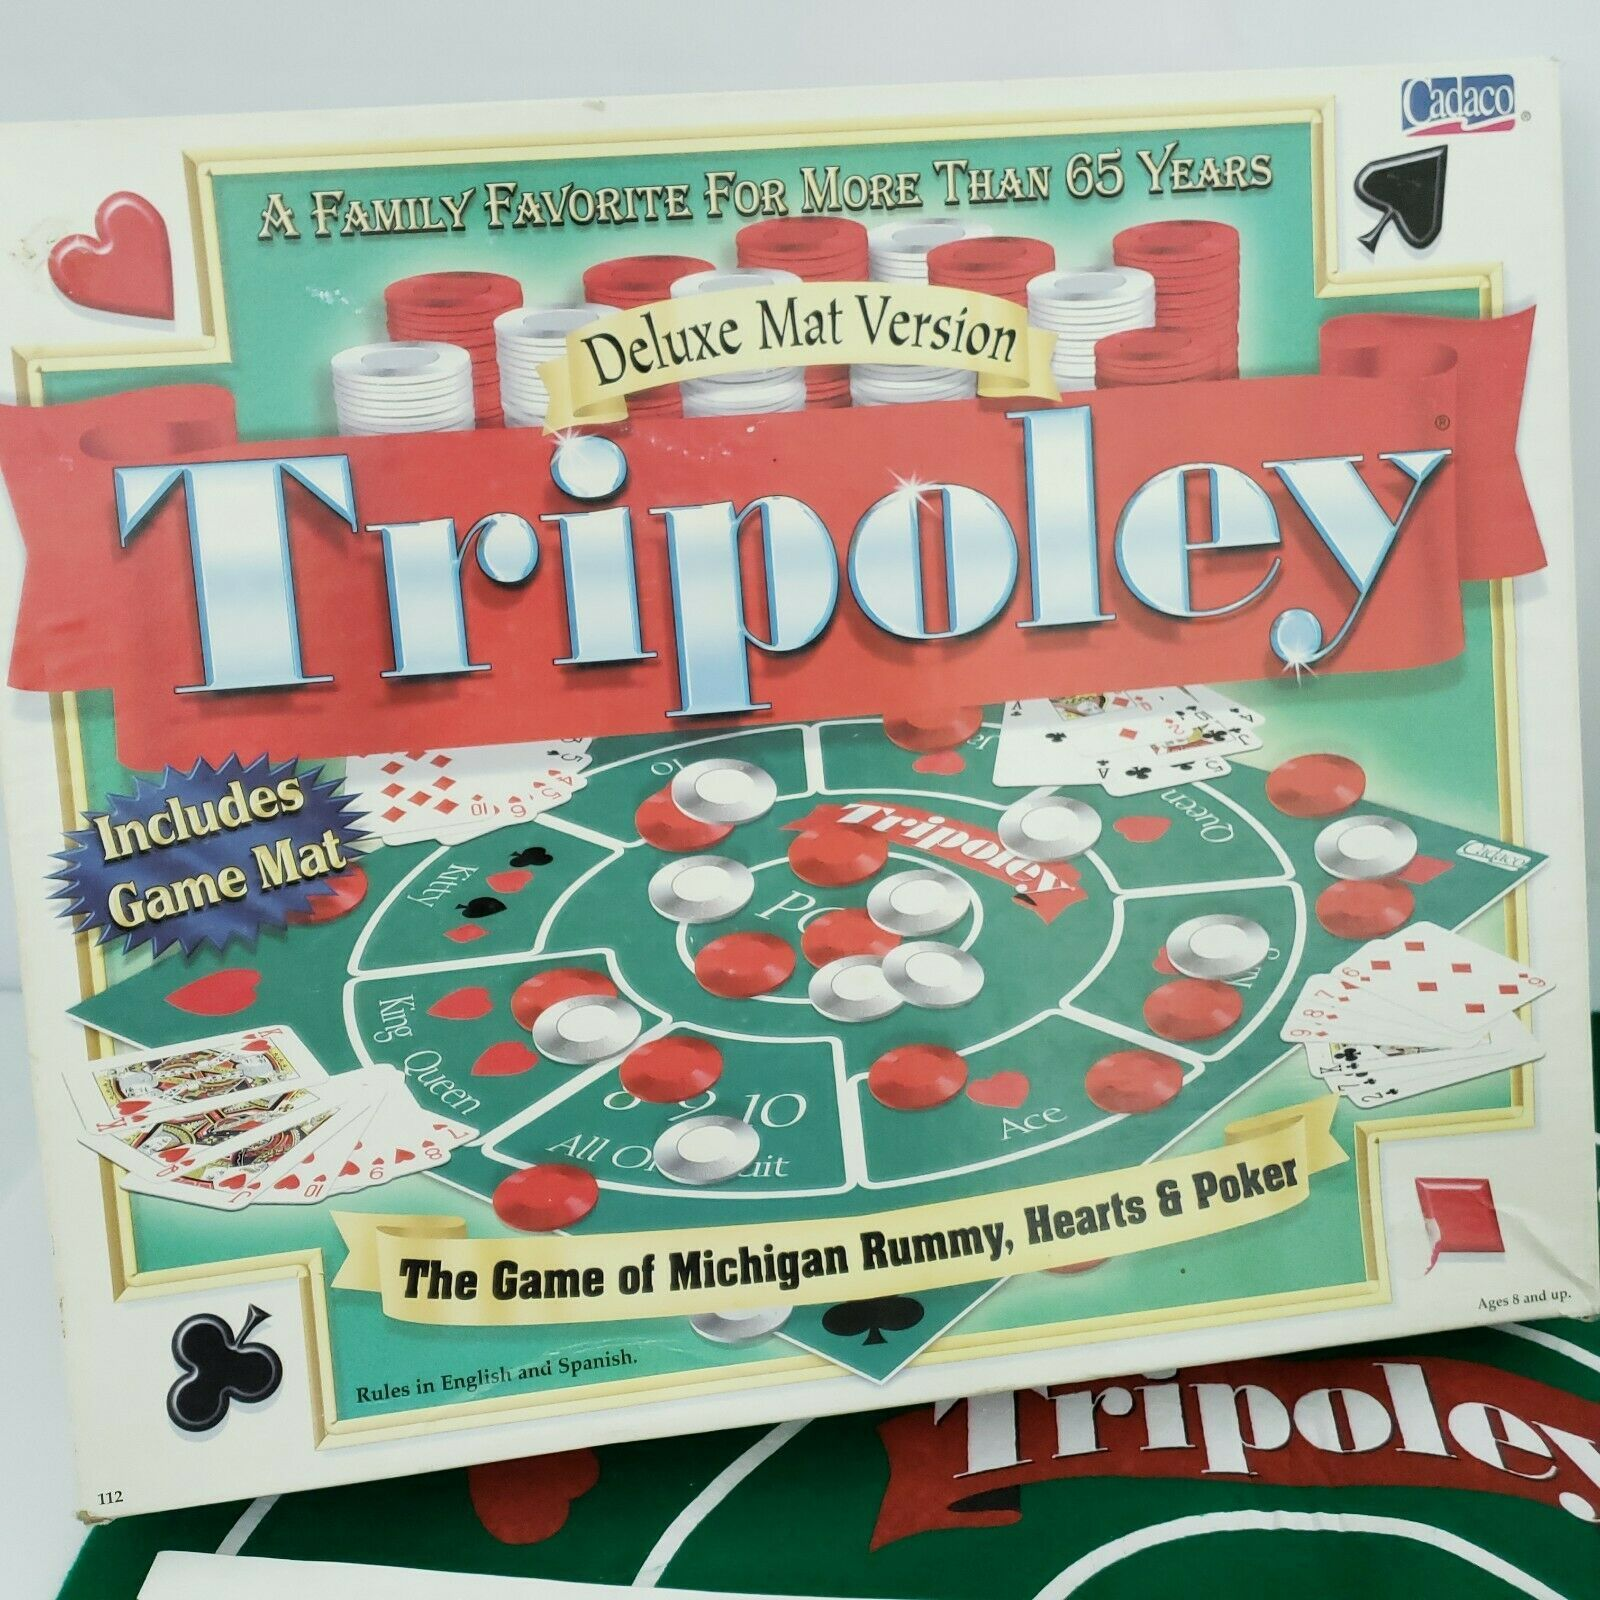 Tripoley Board Game Deluxe Mat Version Cadaco 2-9 Players Vintage 1999 Complete image 2